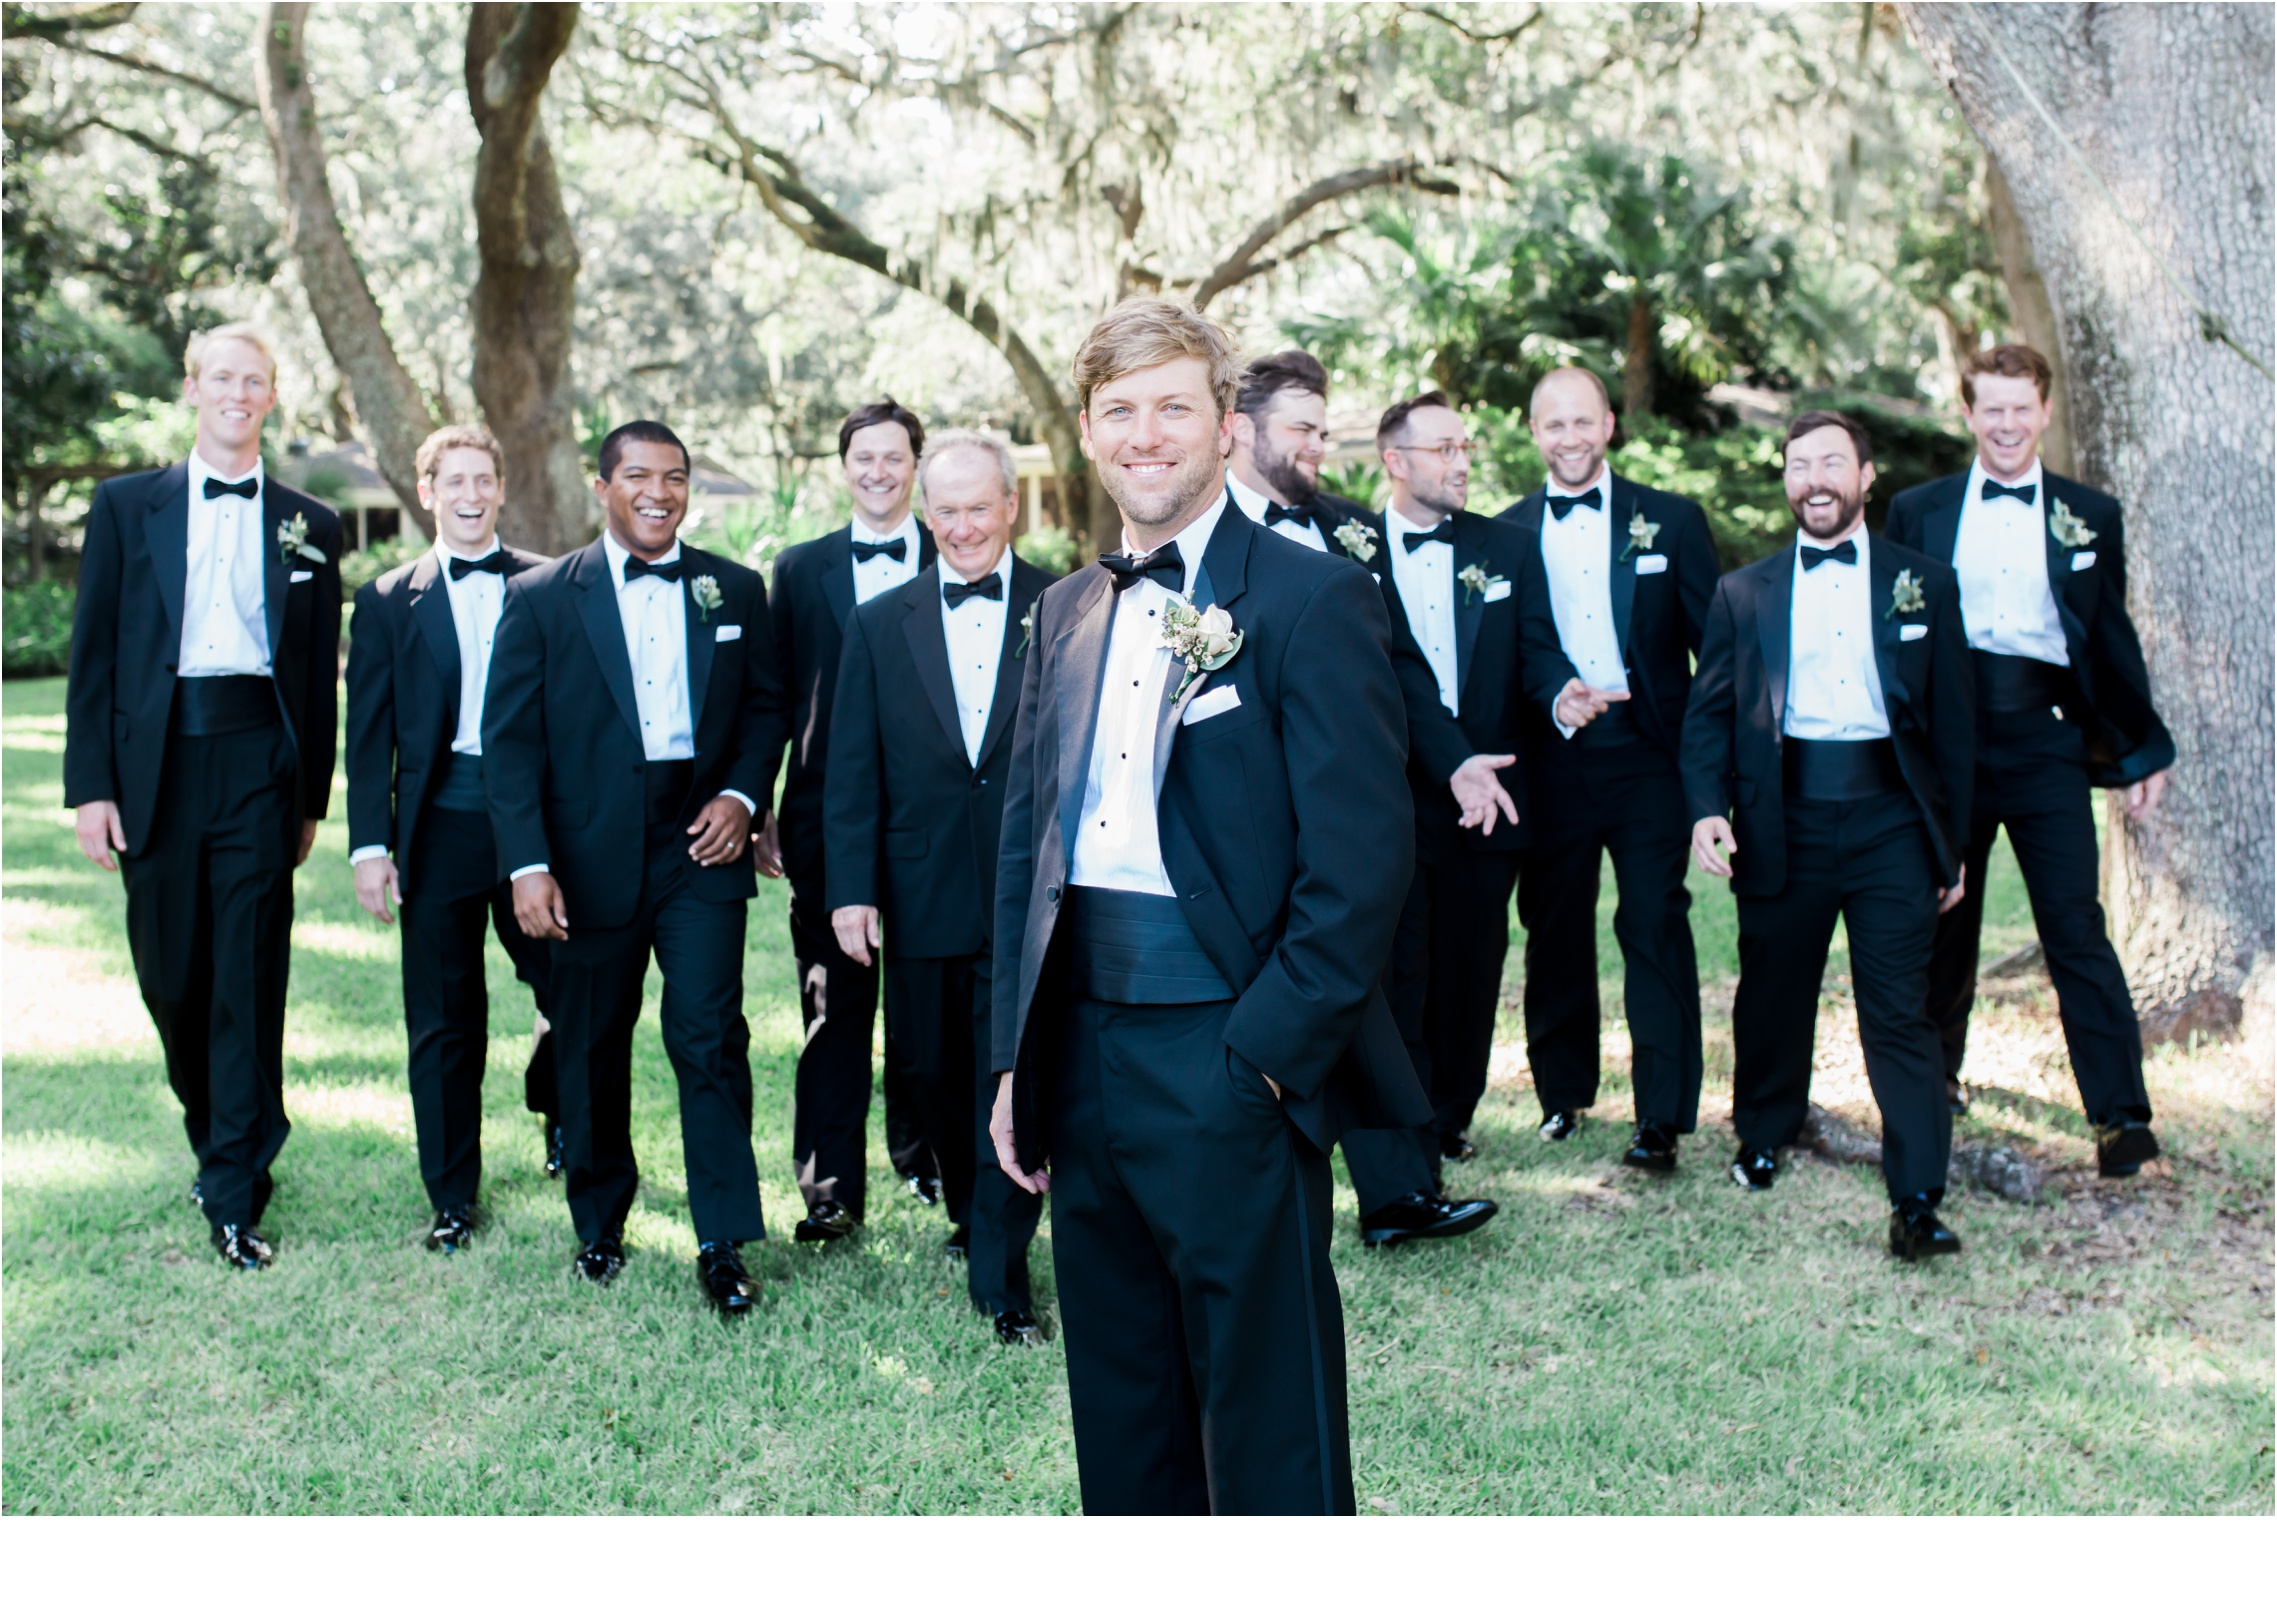 Rainey_Gregg_Photography_St._Simons_Island_Georgia_California_Wedding_Portrait_Photography_0064.jpg